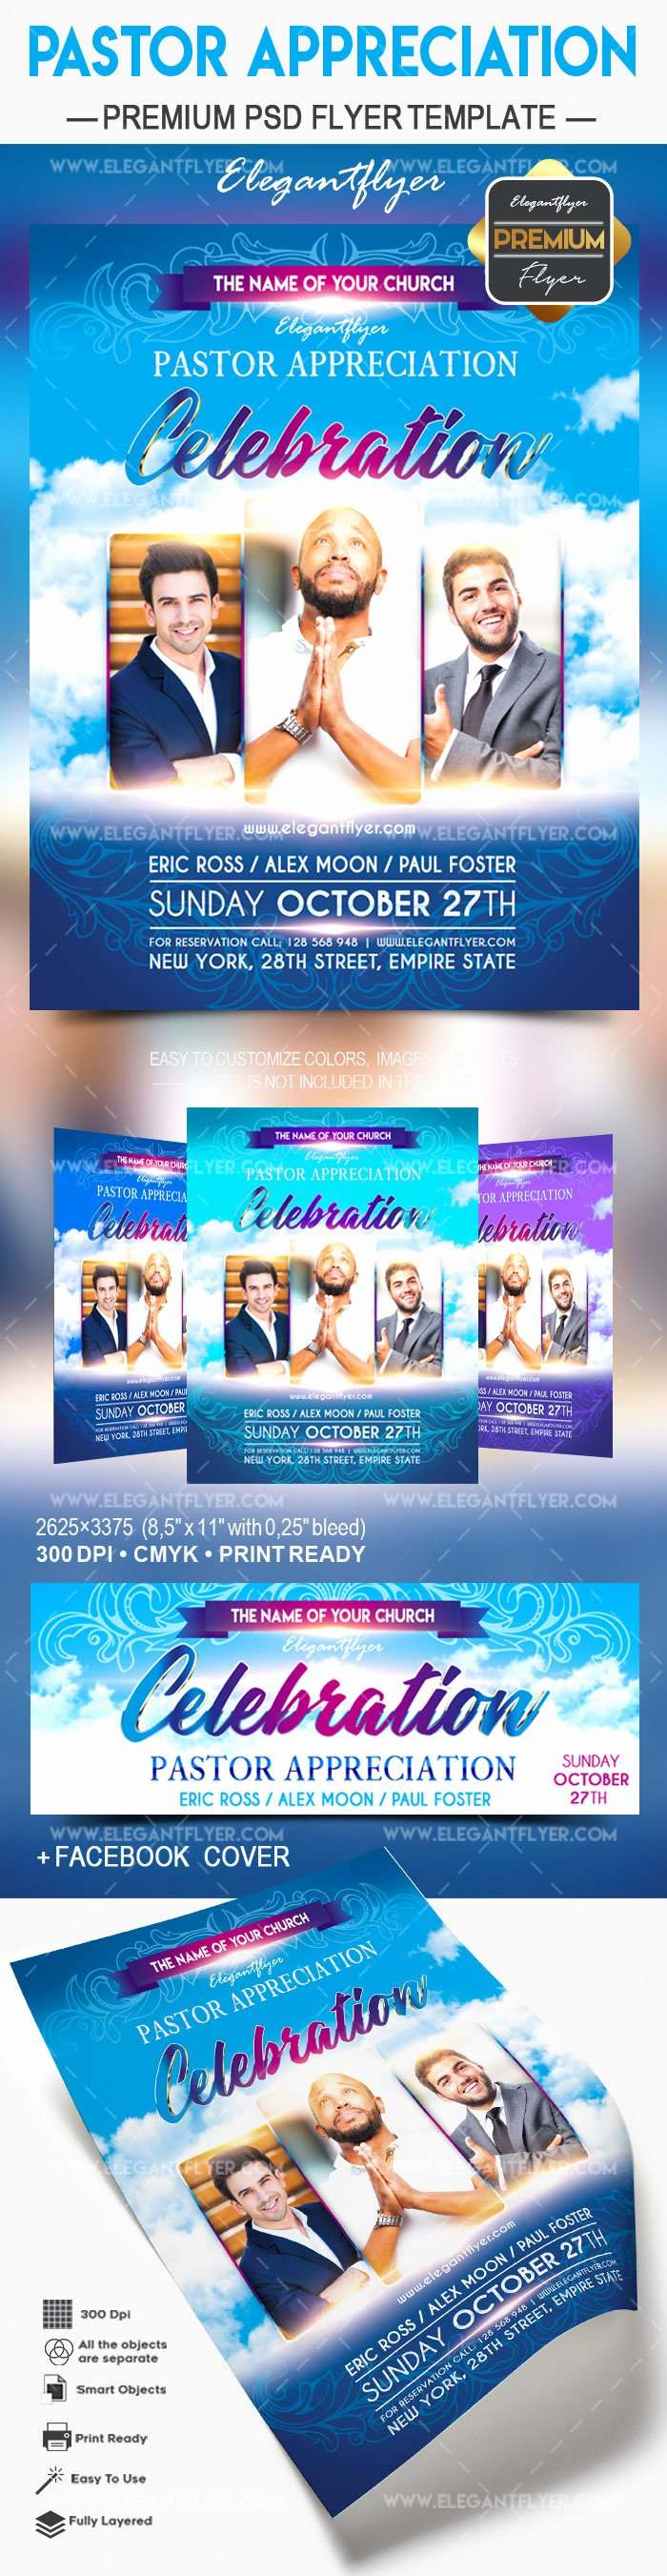 Pastor Appreciation Day Program Template Luxury Flyer for Pastors Appreciation Day – by Elegantflyer